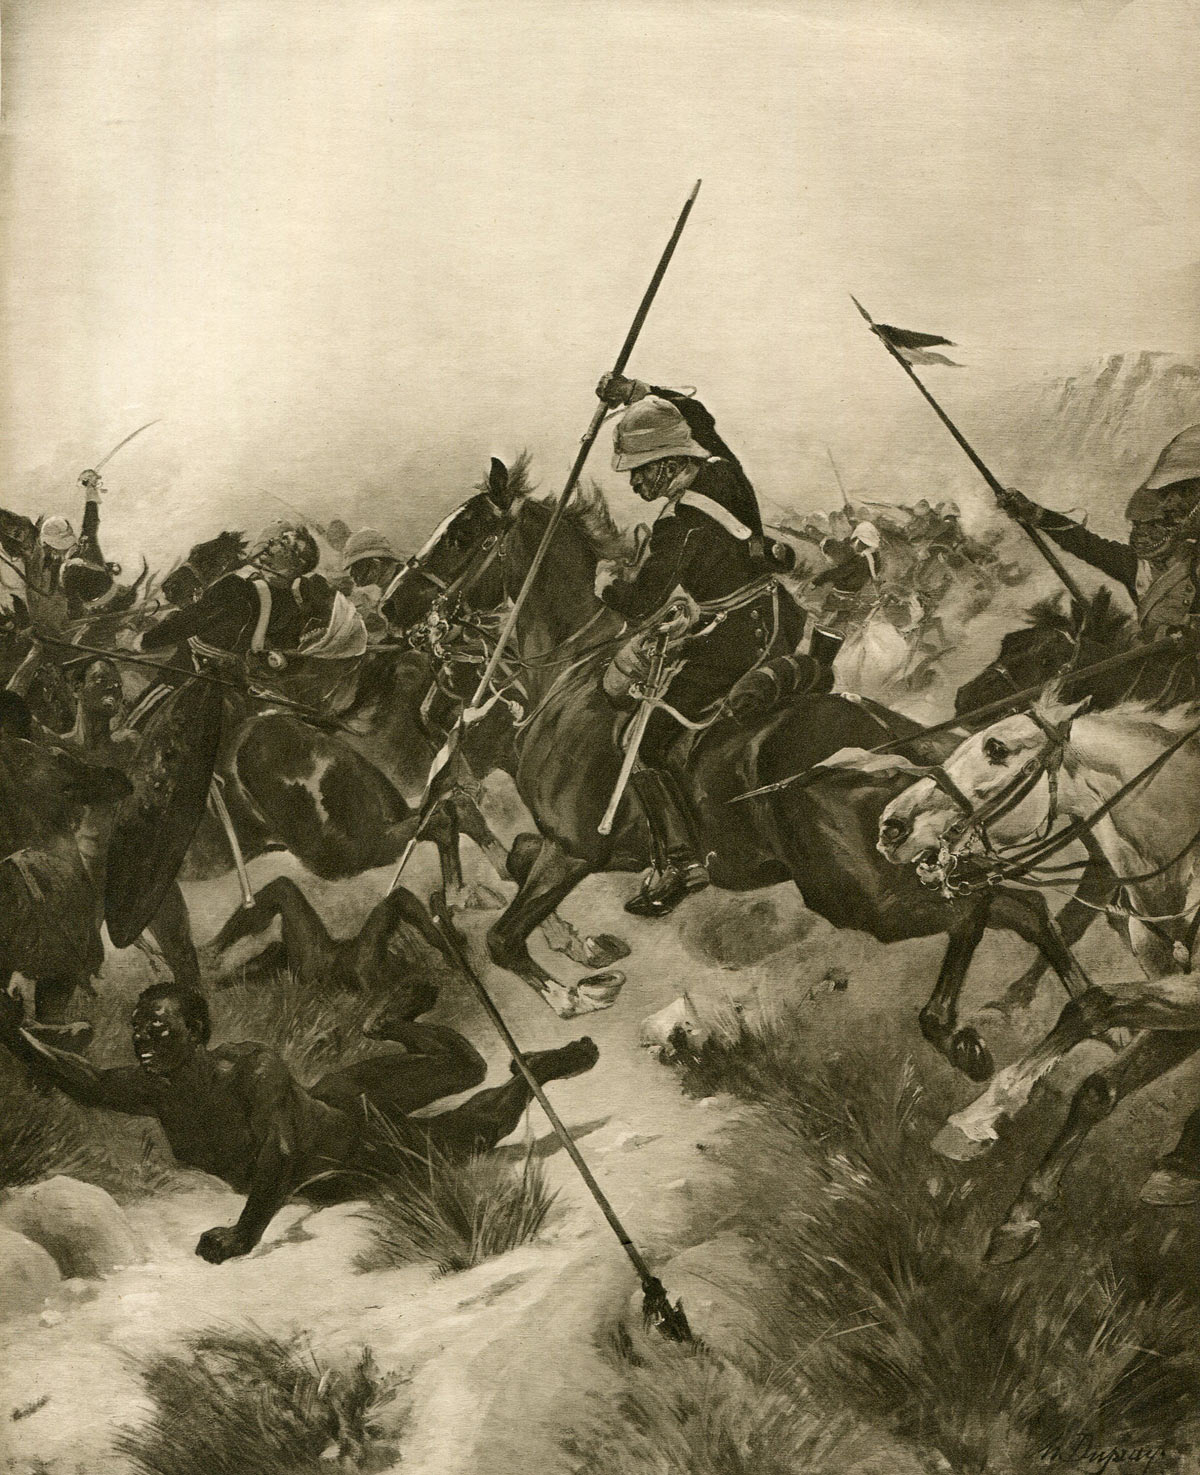 Charge of the 17th Lancers at the Battle of Ulundi on 4th July 1879 in the Zulu War: picture by Henri Dupray